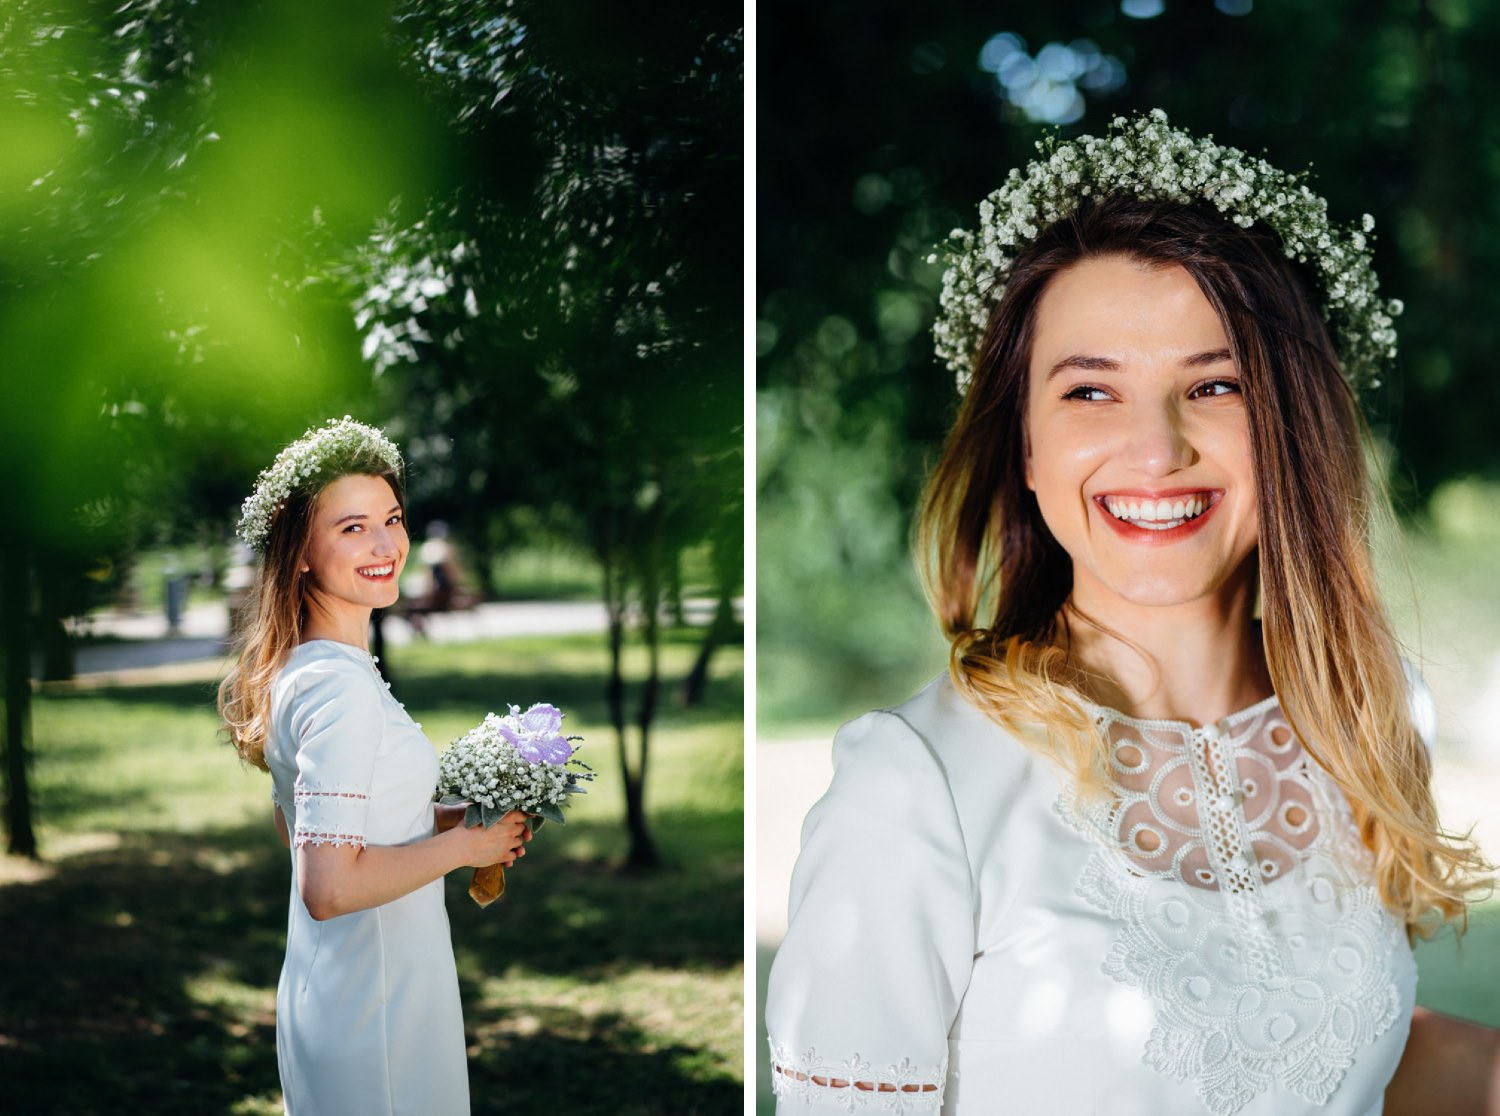 Dinu & Elena civil wedding Bucharest-1034